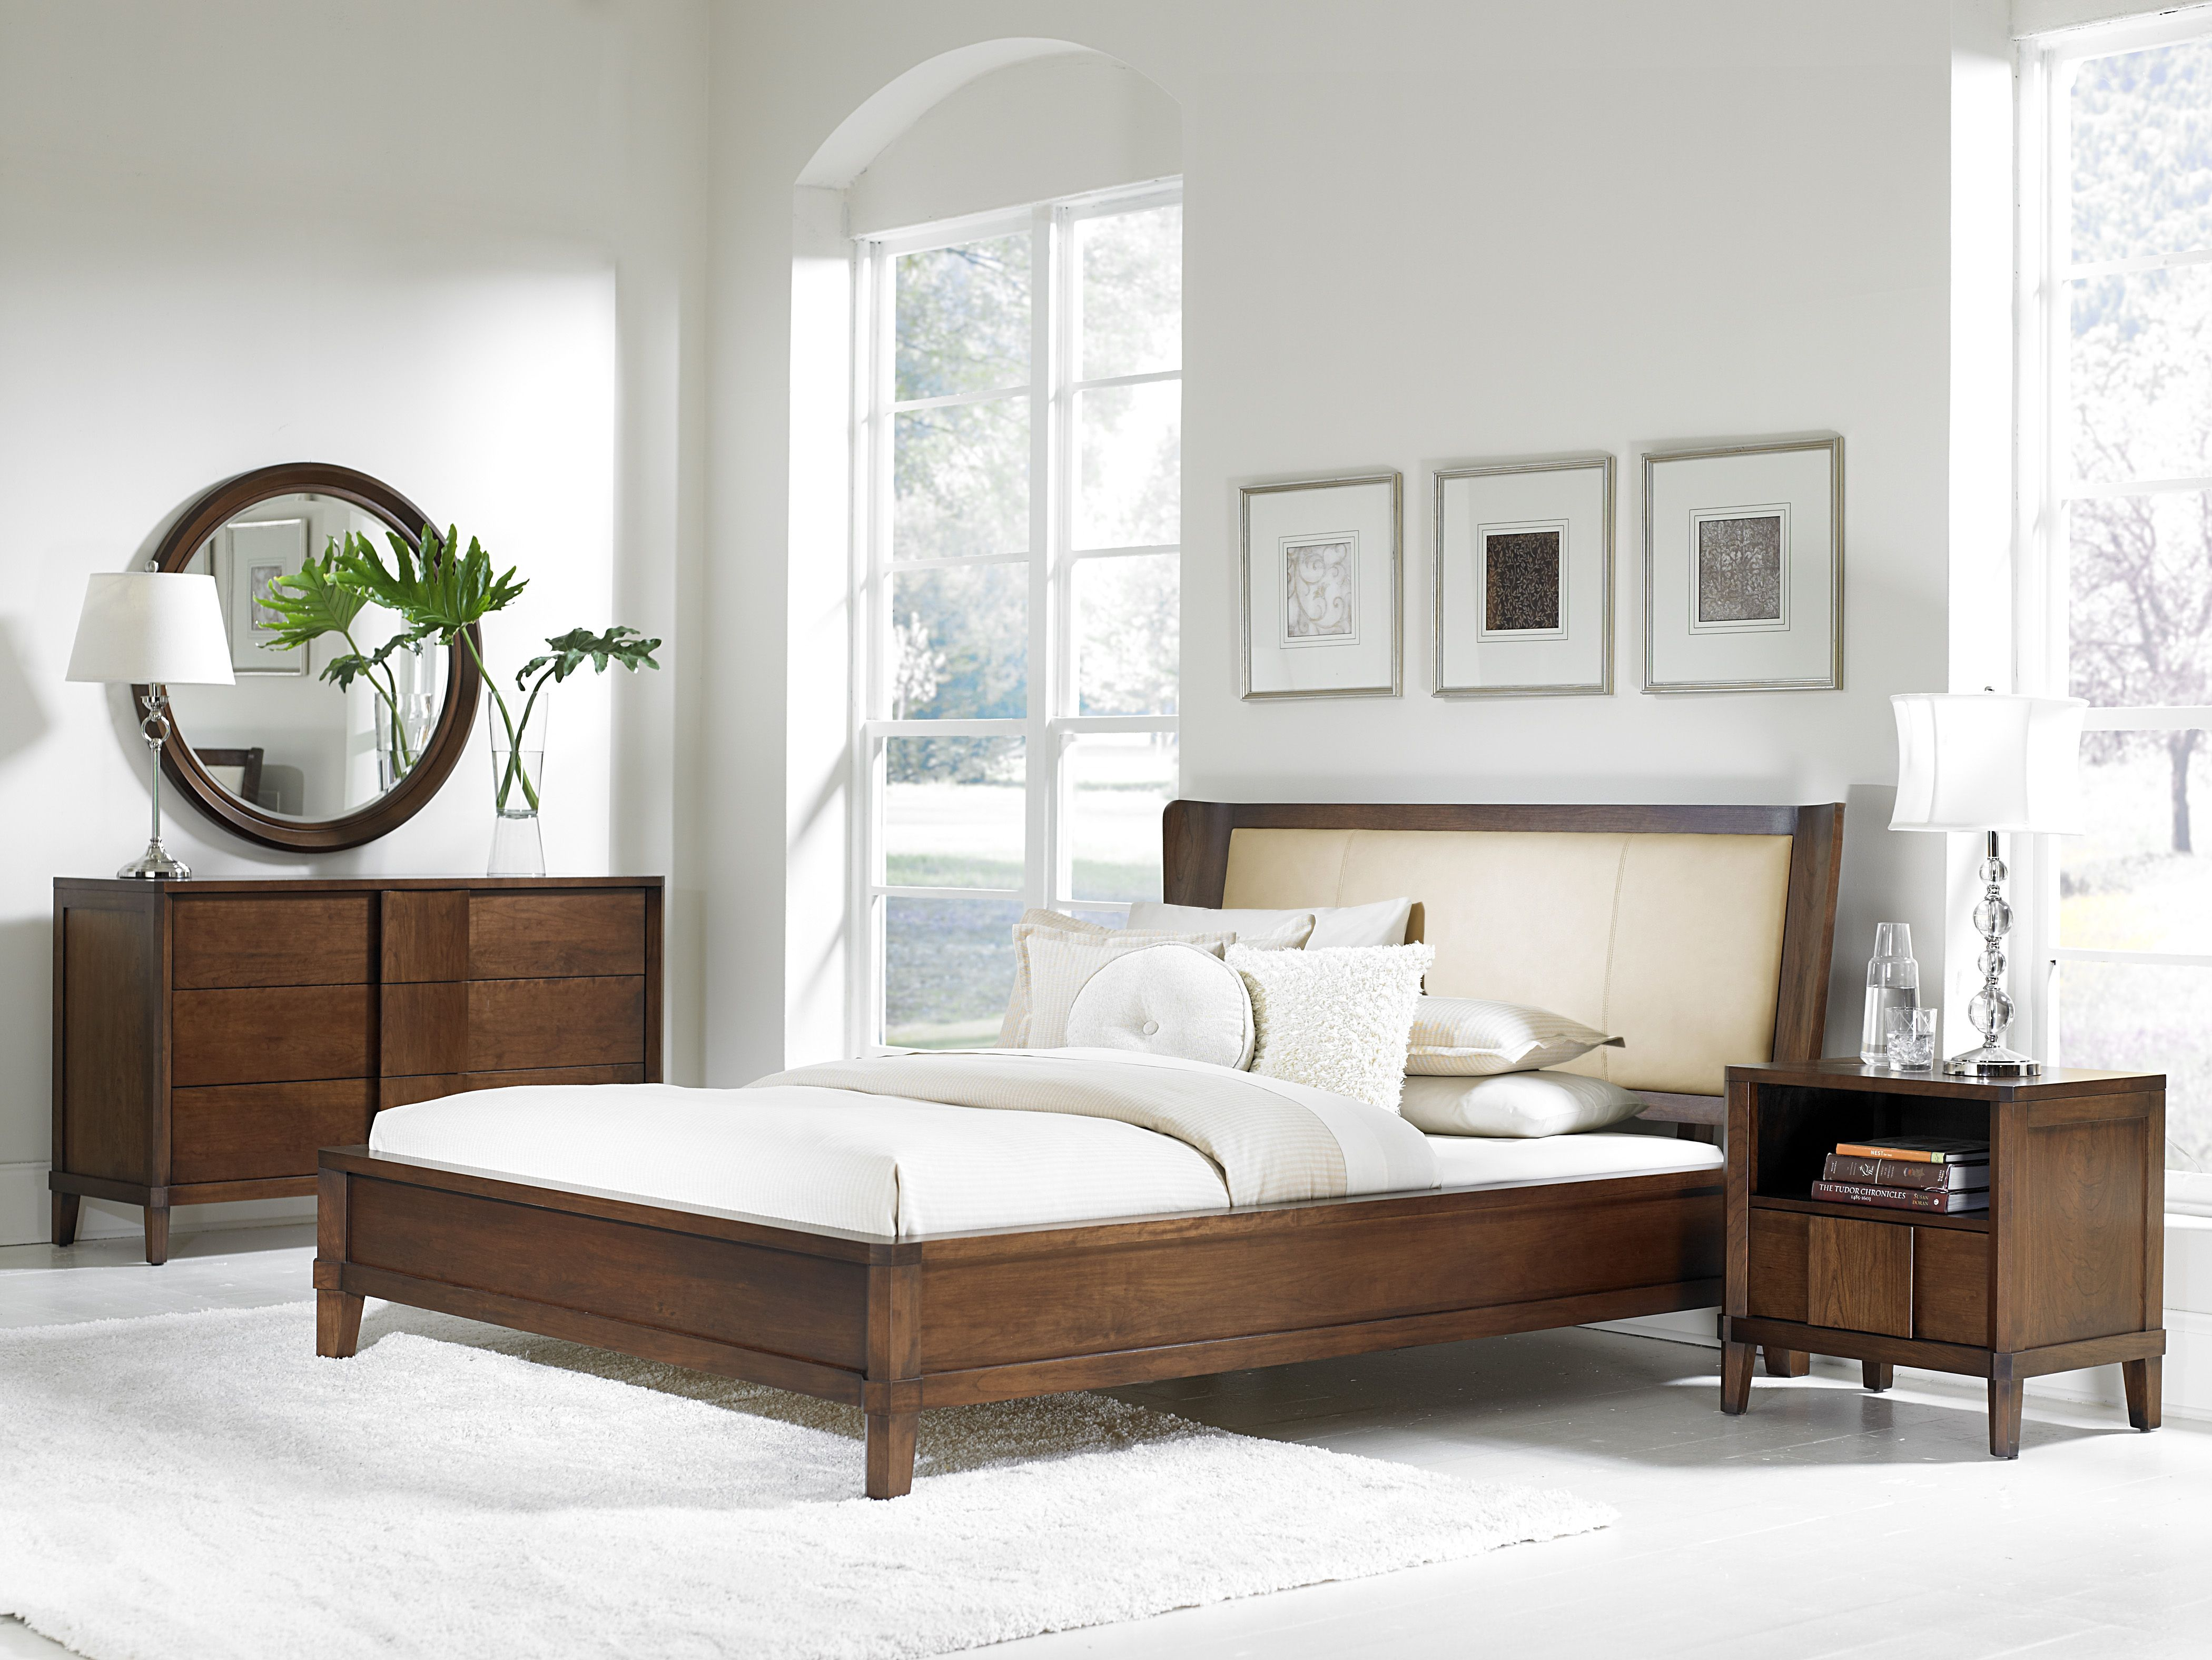 West Bros Arris Collection So Cool Hermann Miller Inspired To Be Sure Must Be Why I Love This Bed So Muc Bedroom Furnishings Furniture Modern Bedroom Set